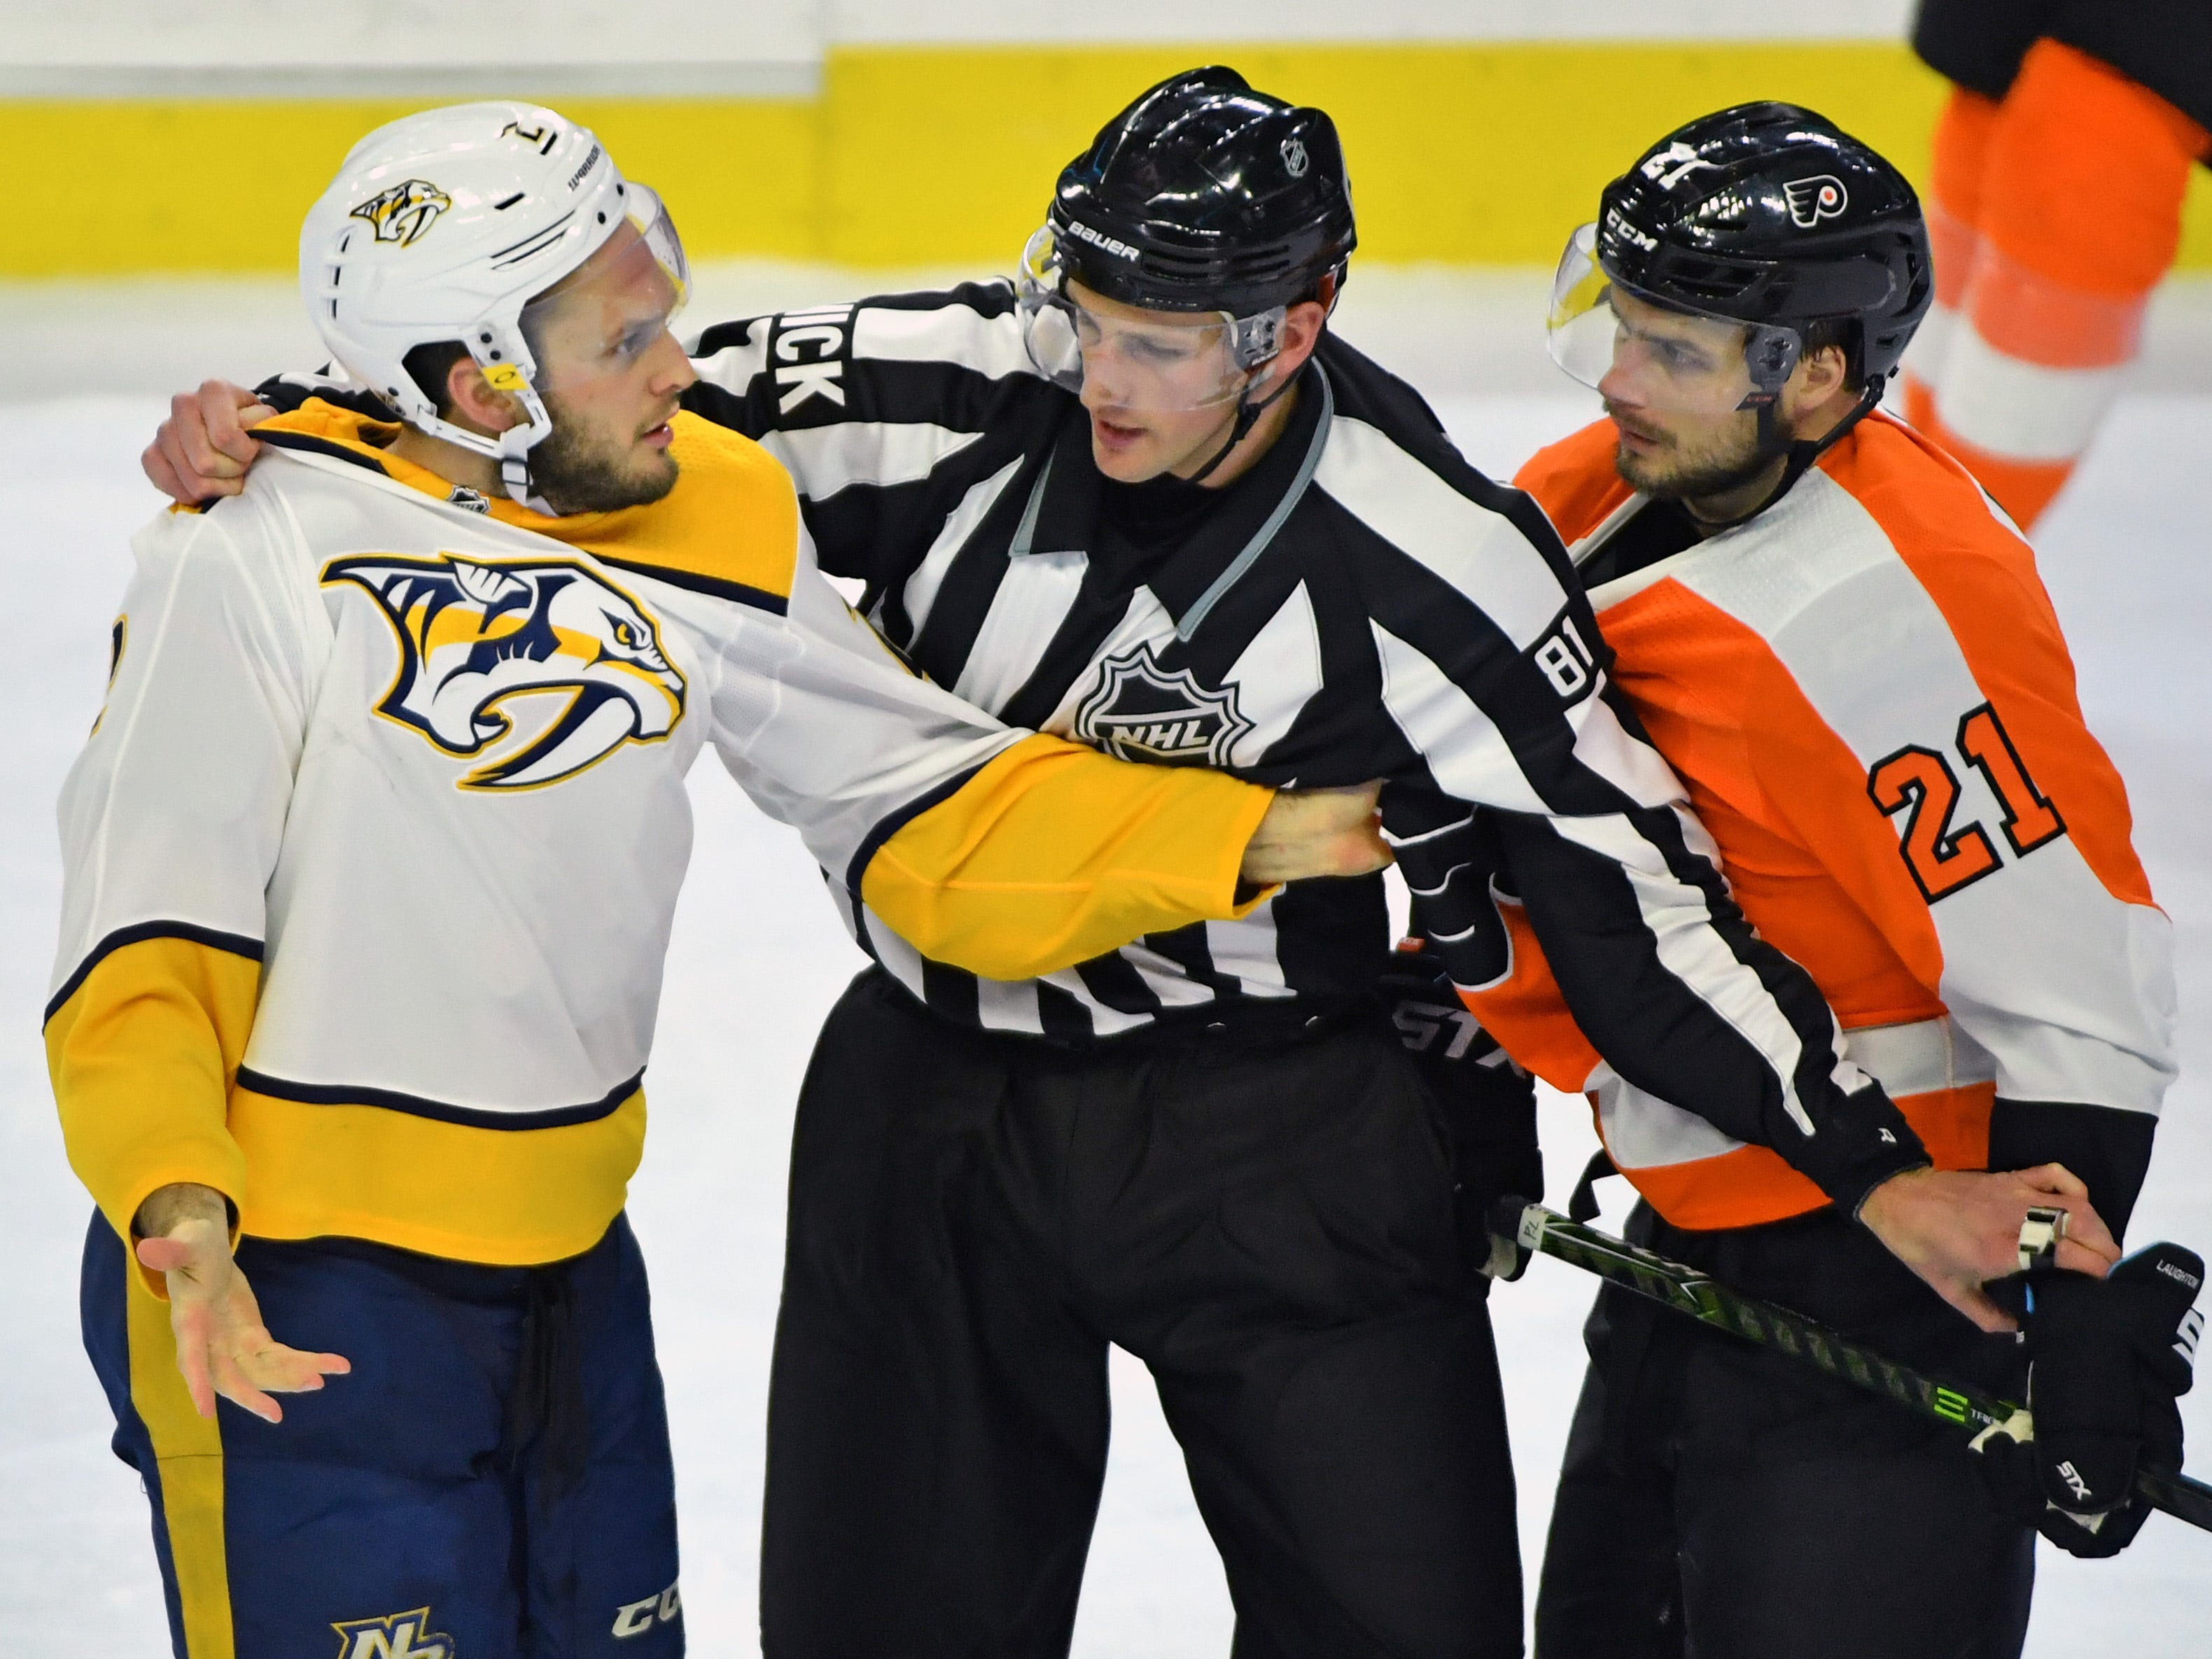 Dec 20: Flyers 2, Predators 1 -- Nashville Predators defenseman Anthony Bitetto (2) is called for unsportsmanlike conduct against Philadelphia Flyers center Scott Laughton (21) during the third period at Wells Fargo Center.